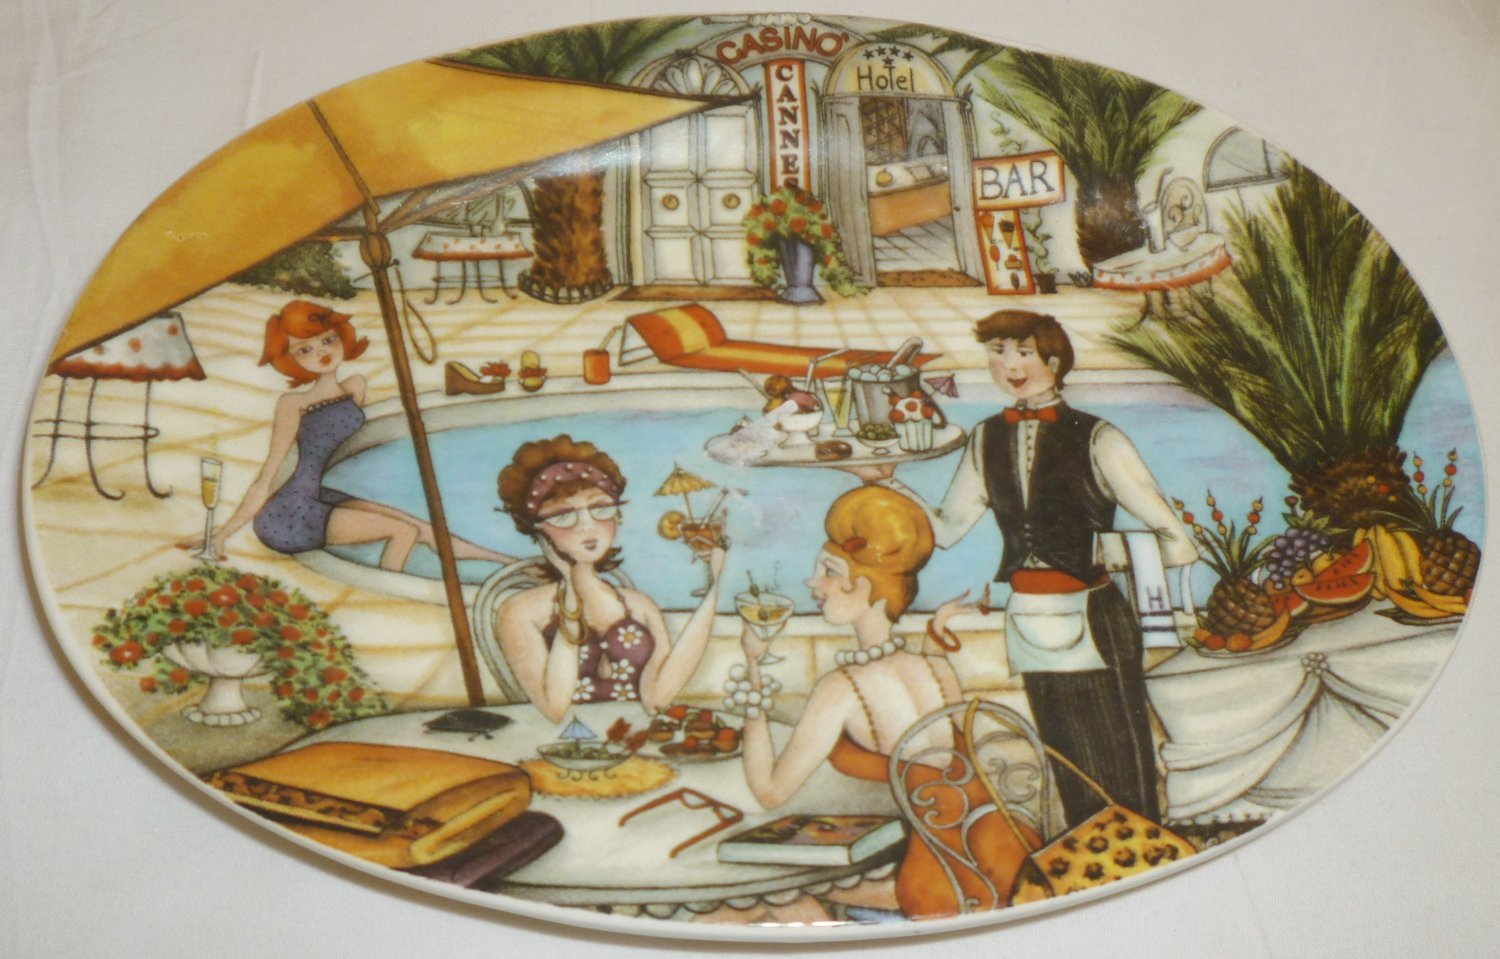 HANDPAINTED PORCELAIN OVAL PLATE CASINO CANNES HOTEL BAR ITALY